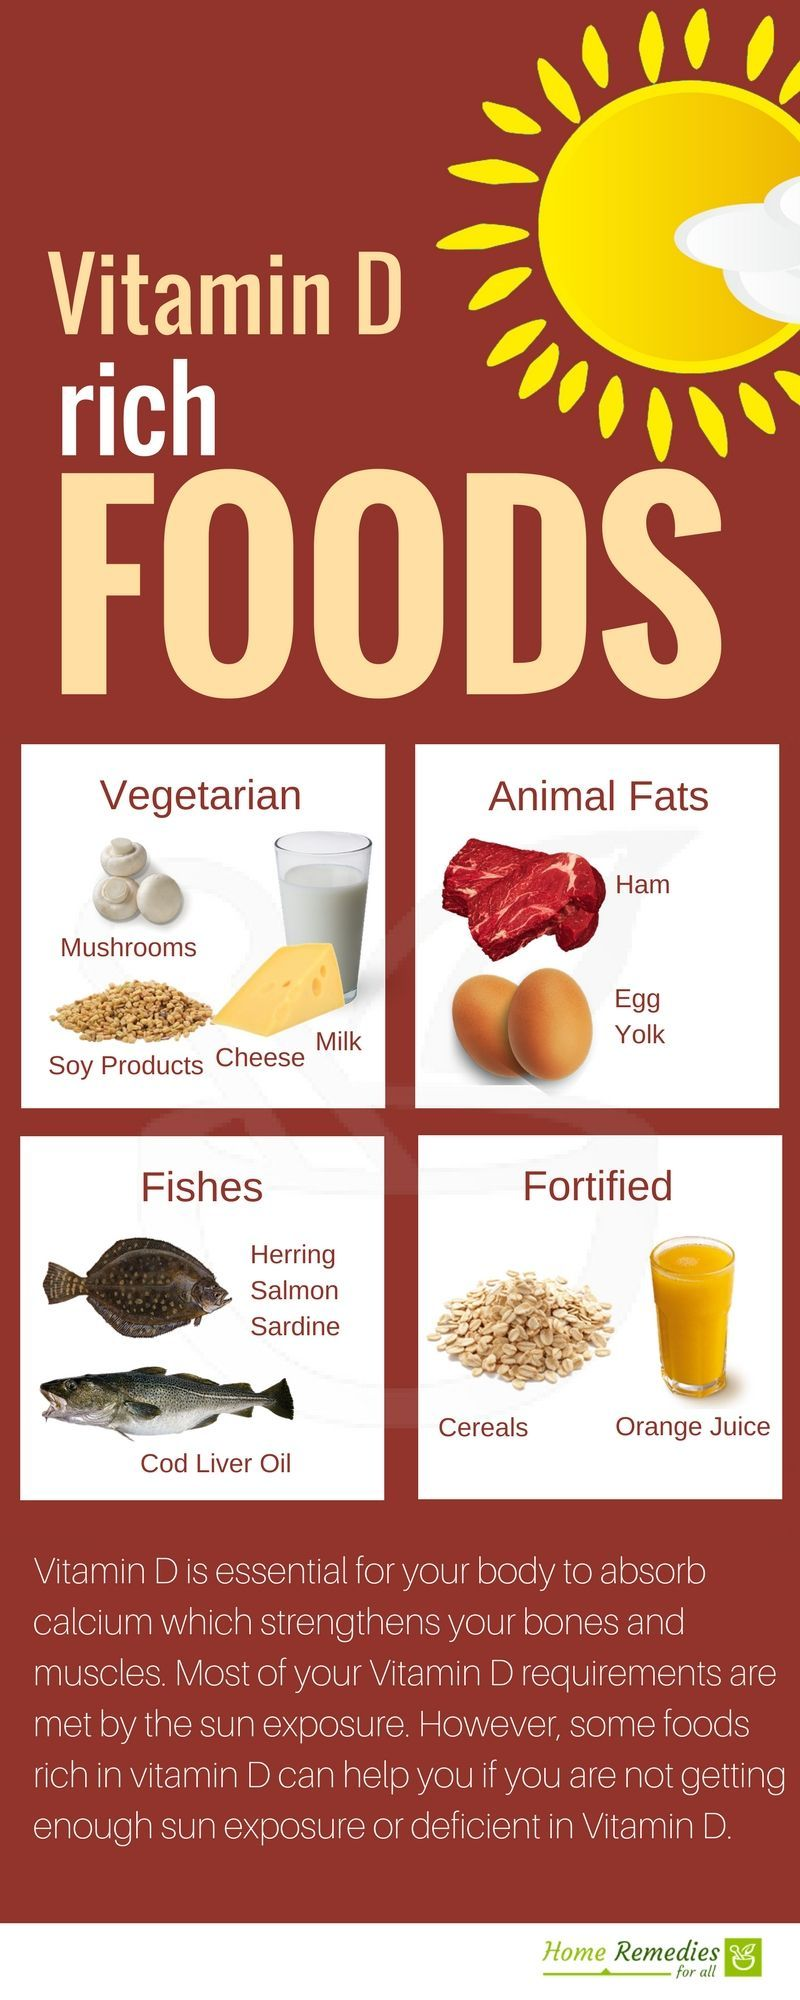 Eat these Vitamin D rich foods to get rid of Vitamin D